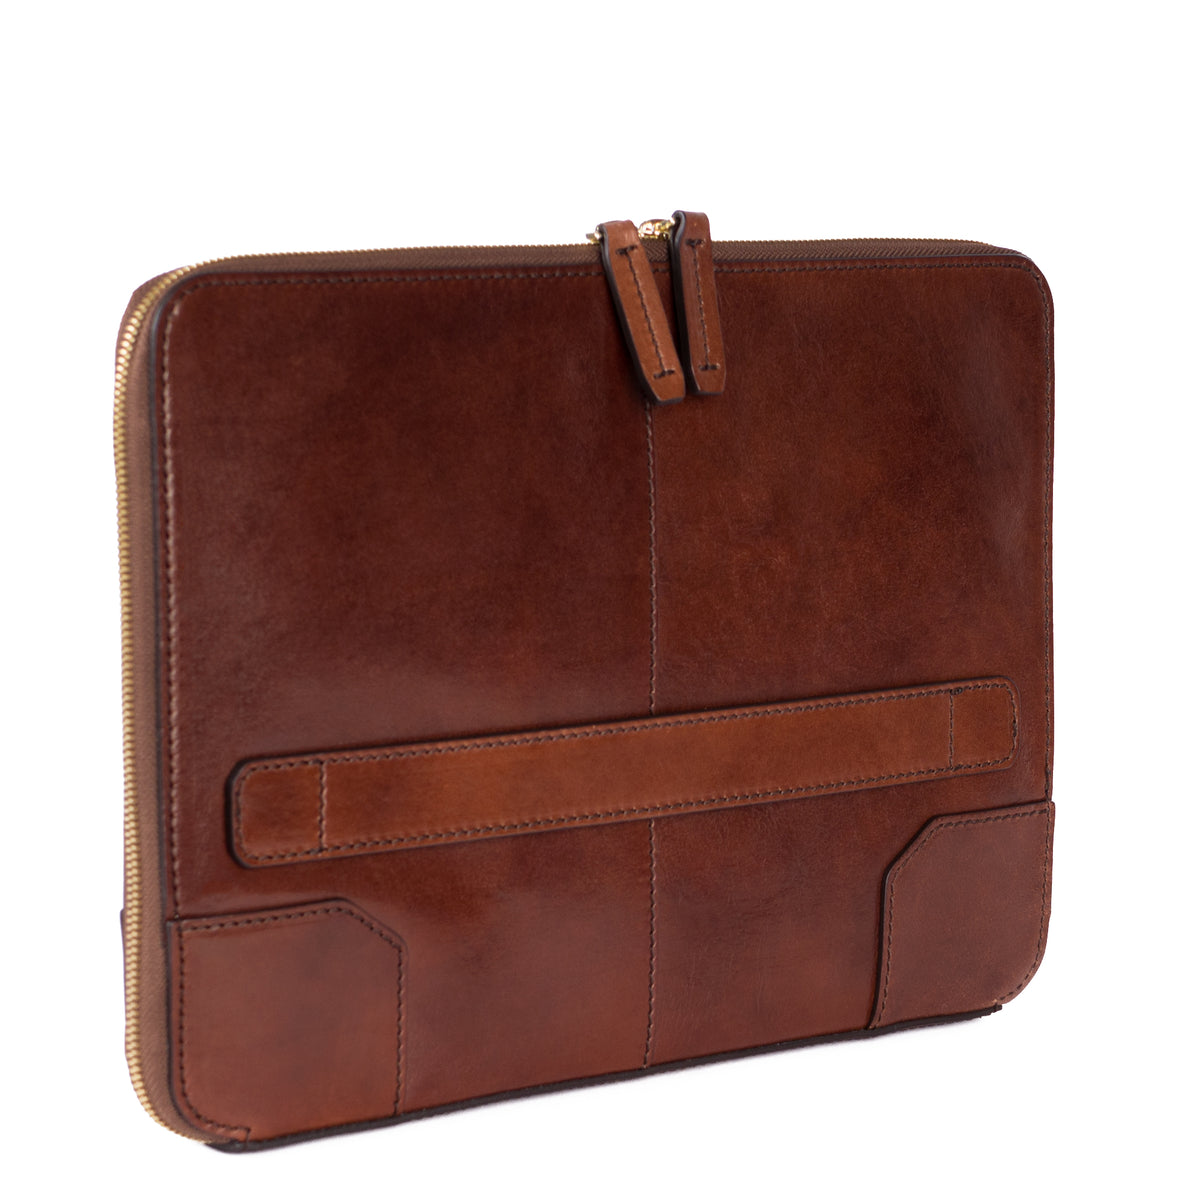 Document / Tablet Case